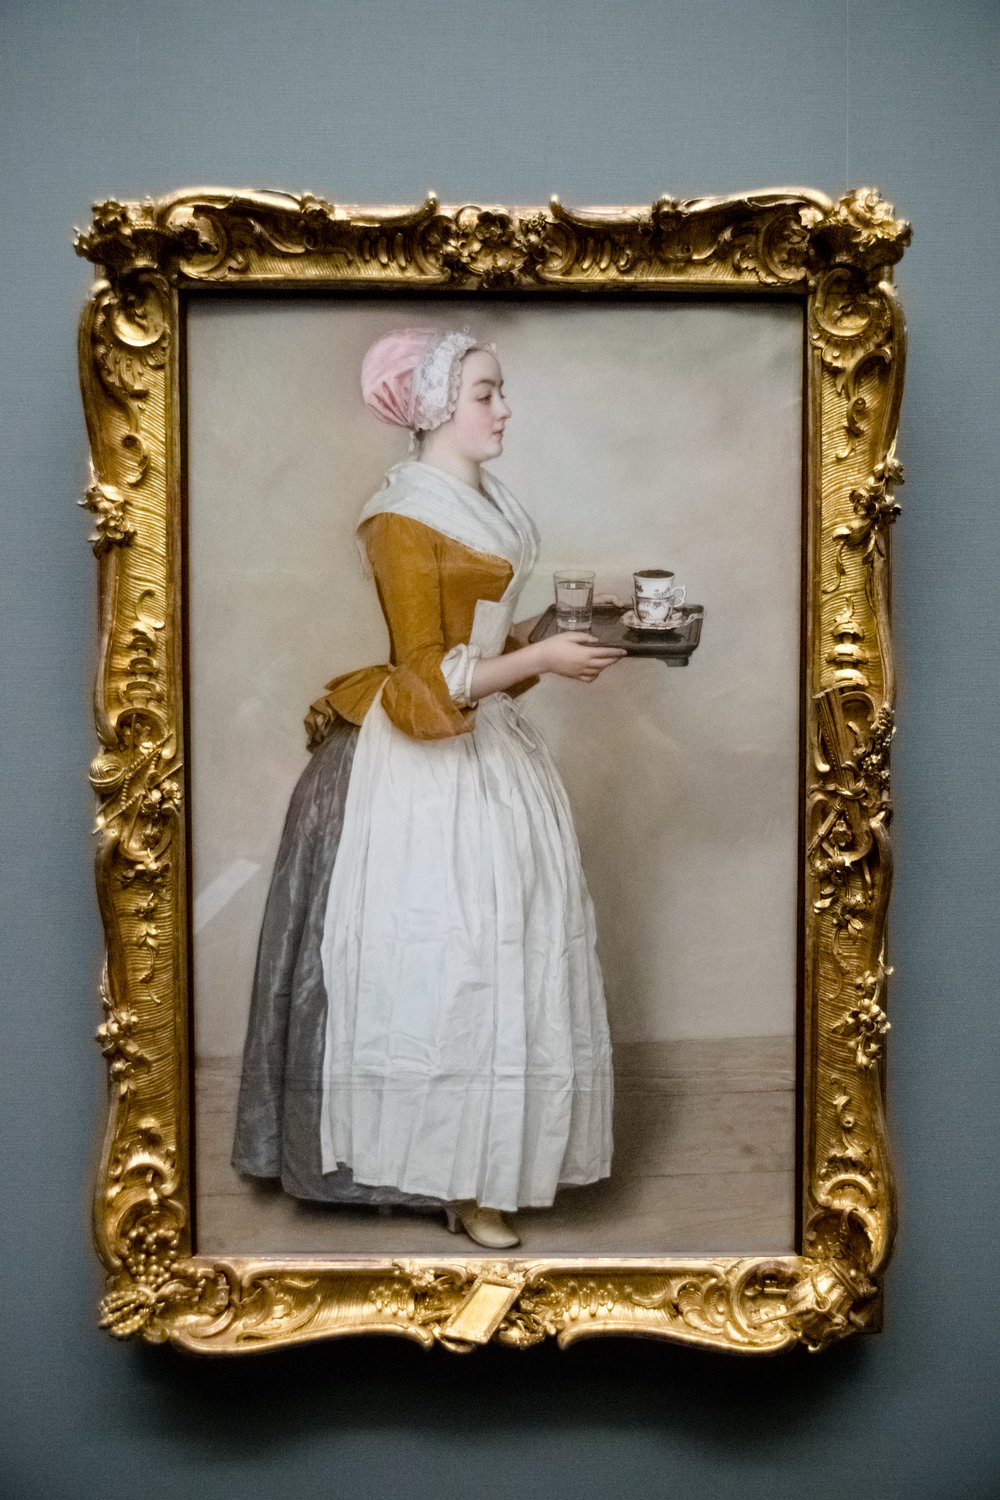 The Chocolate Girl by Swiss artist Jean-Étienne Liotard